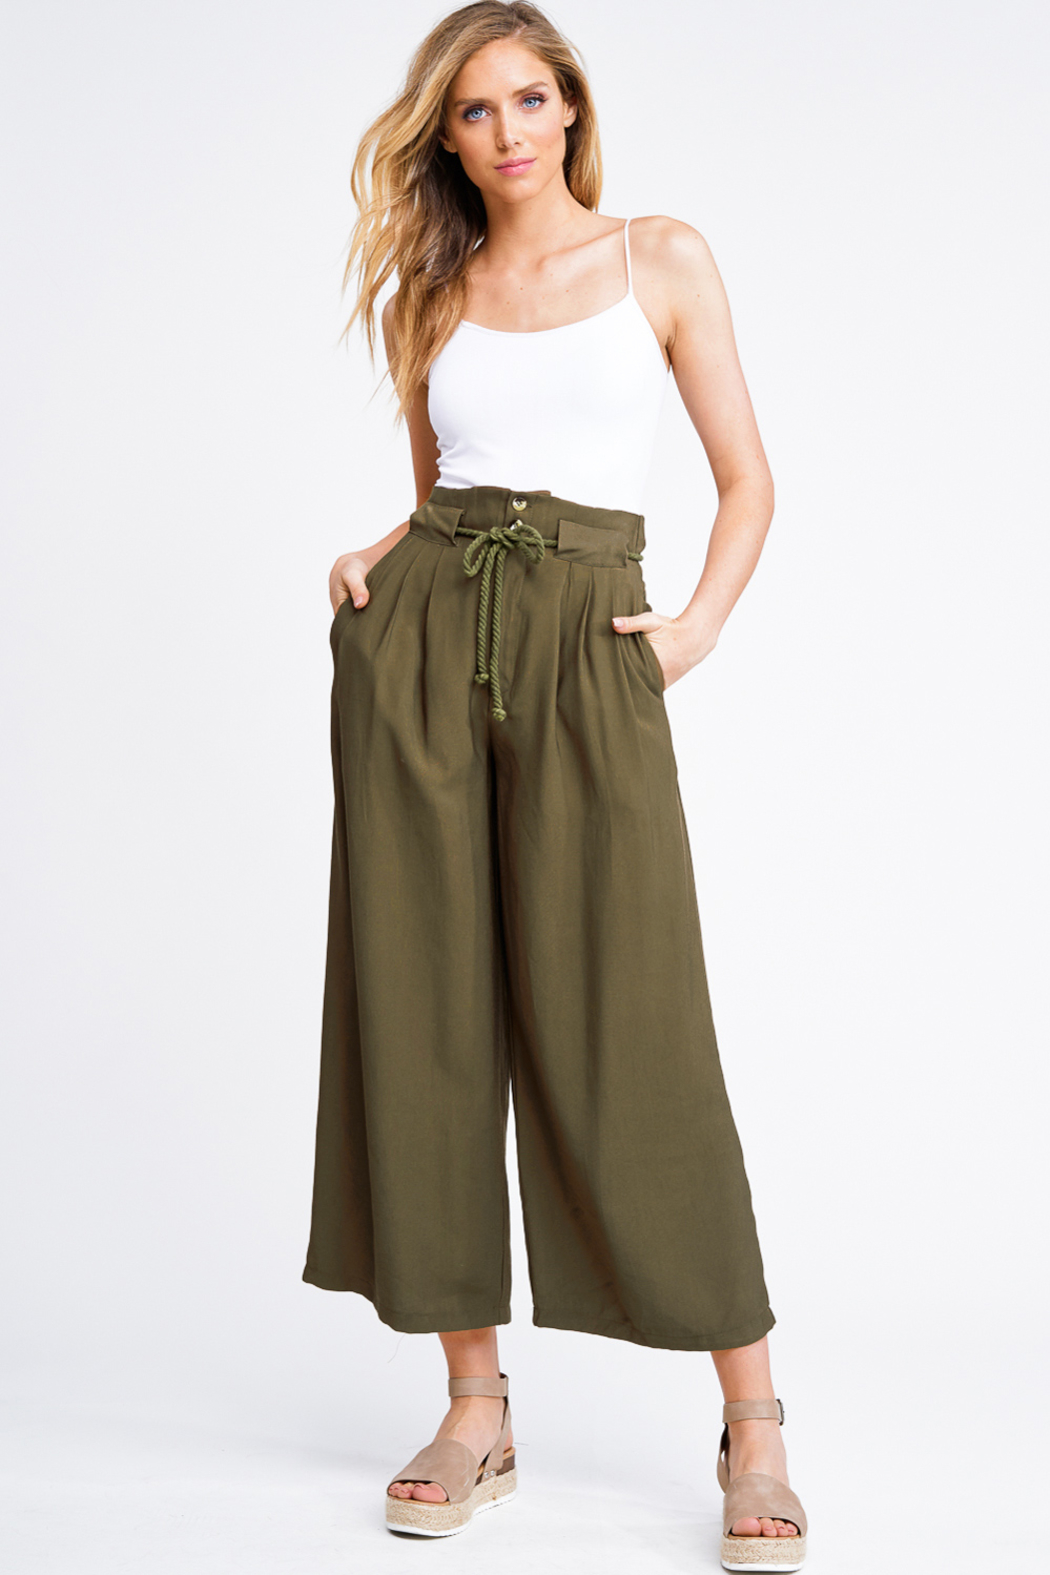 MONTREZ DARCY PAPERBAG WAIST TROUSER PANTS from California